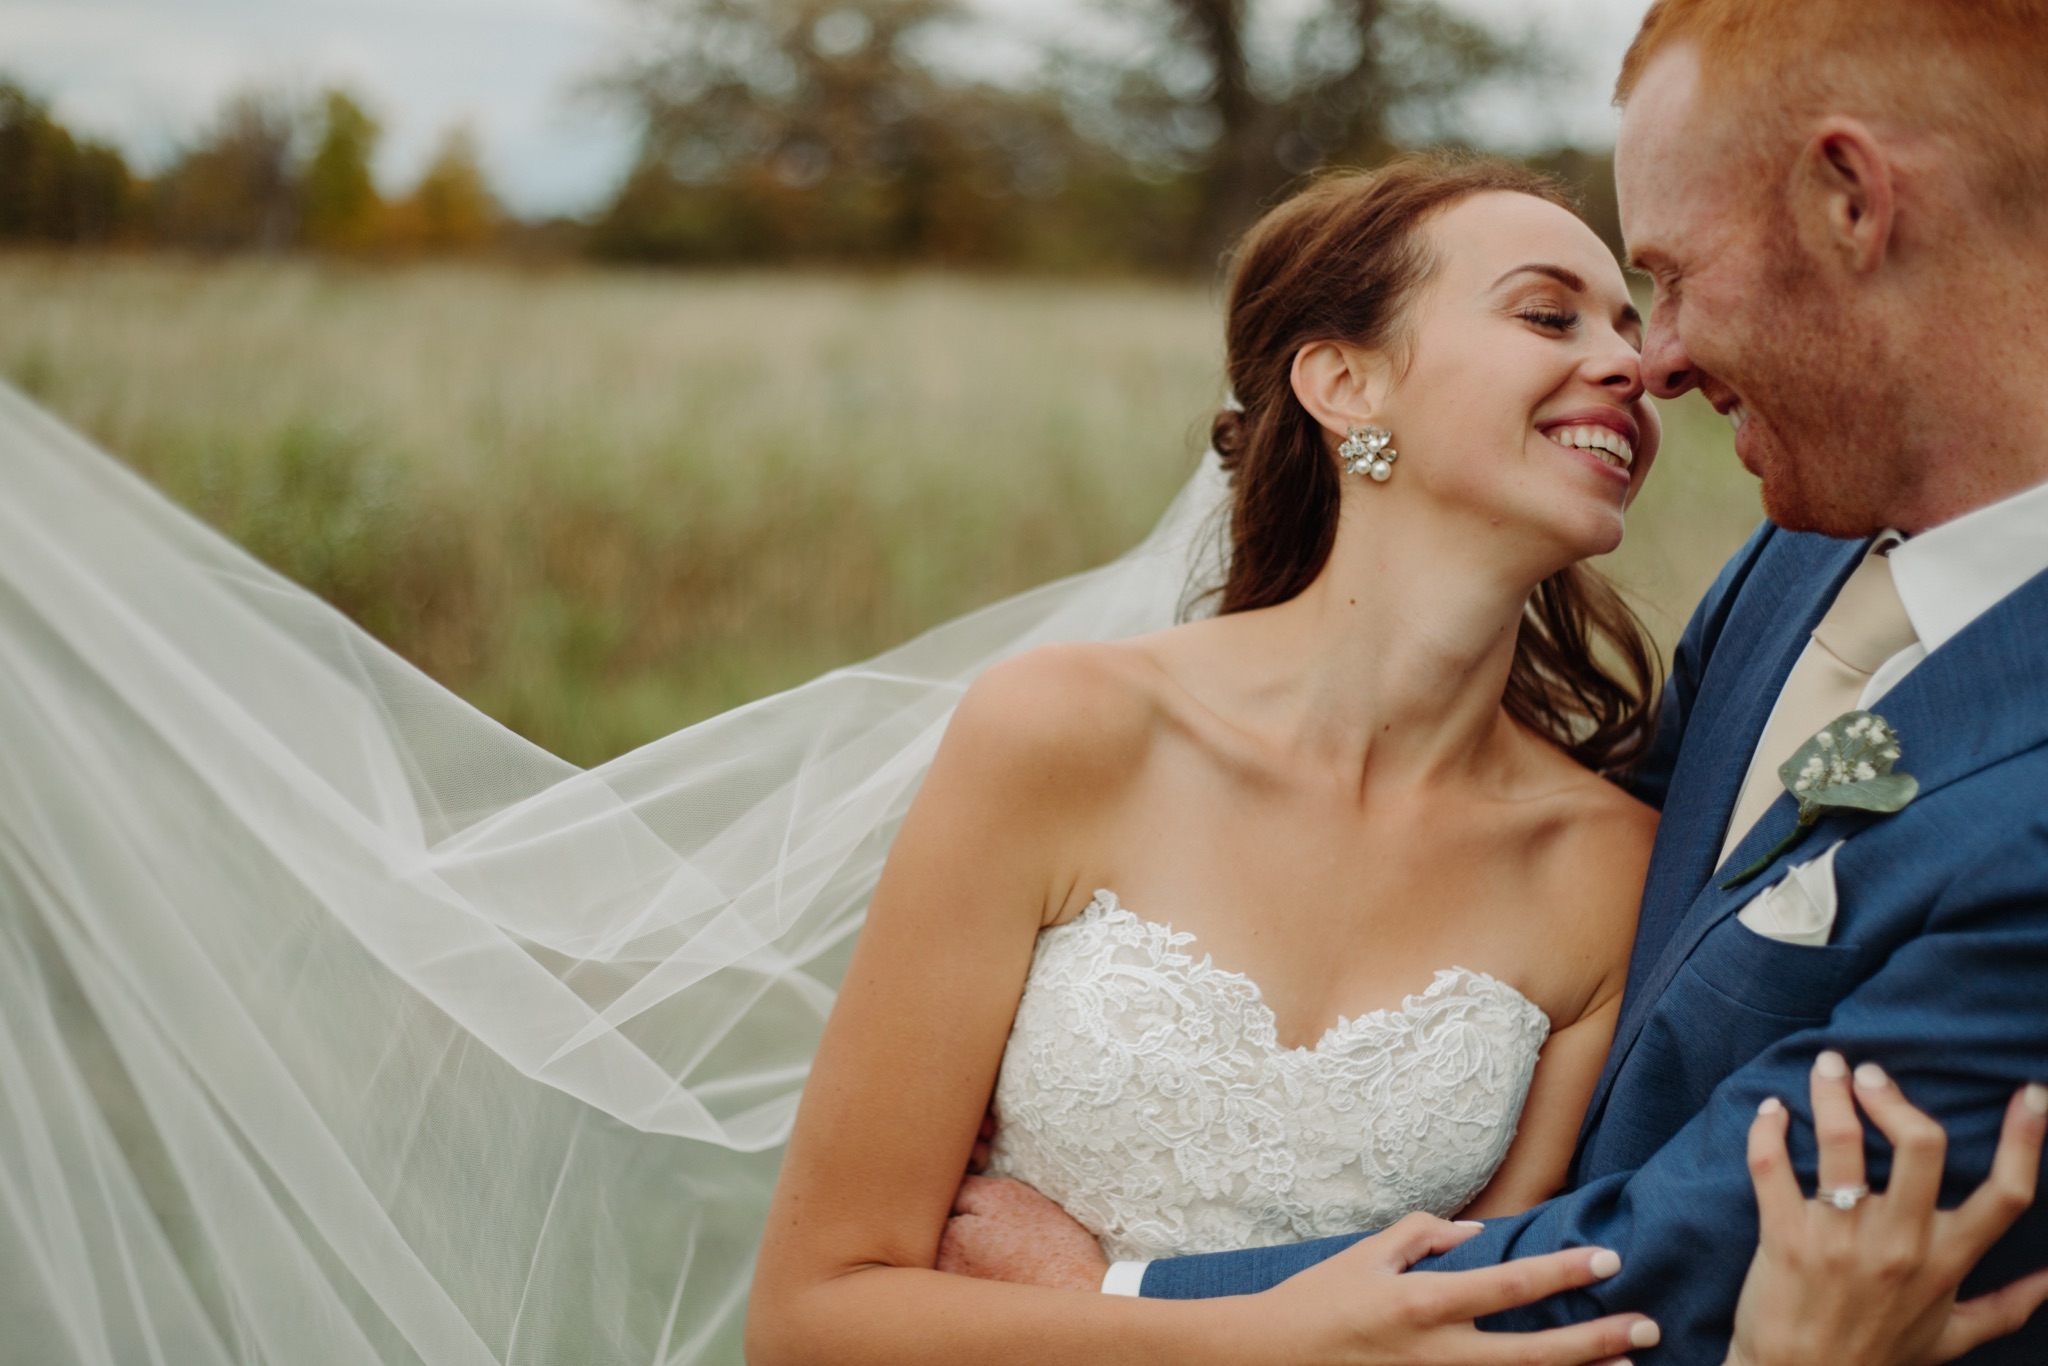 bride and groom smiling at each other and holding each other